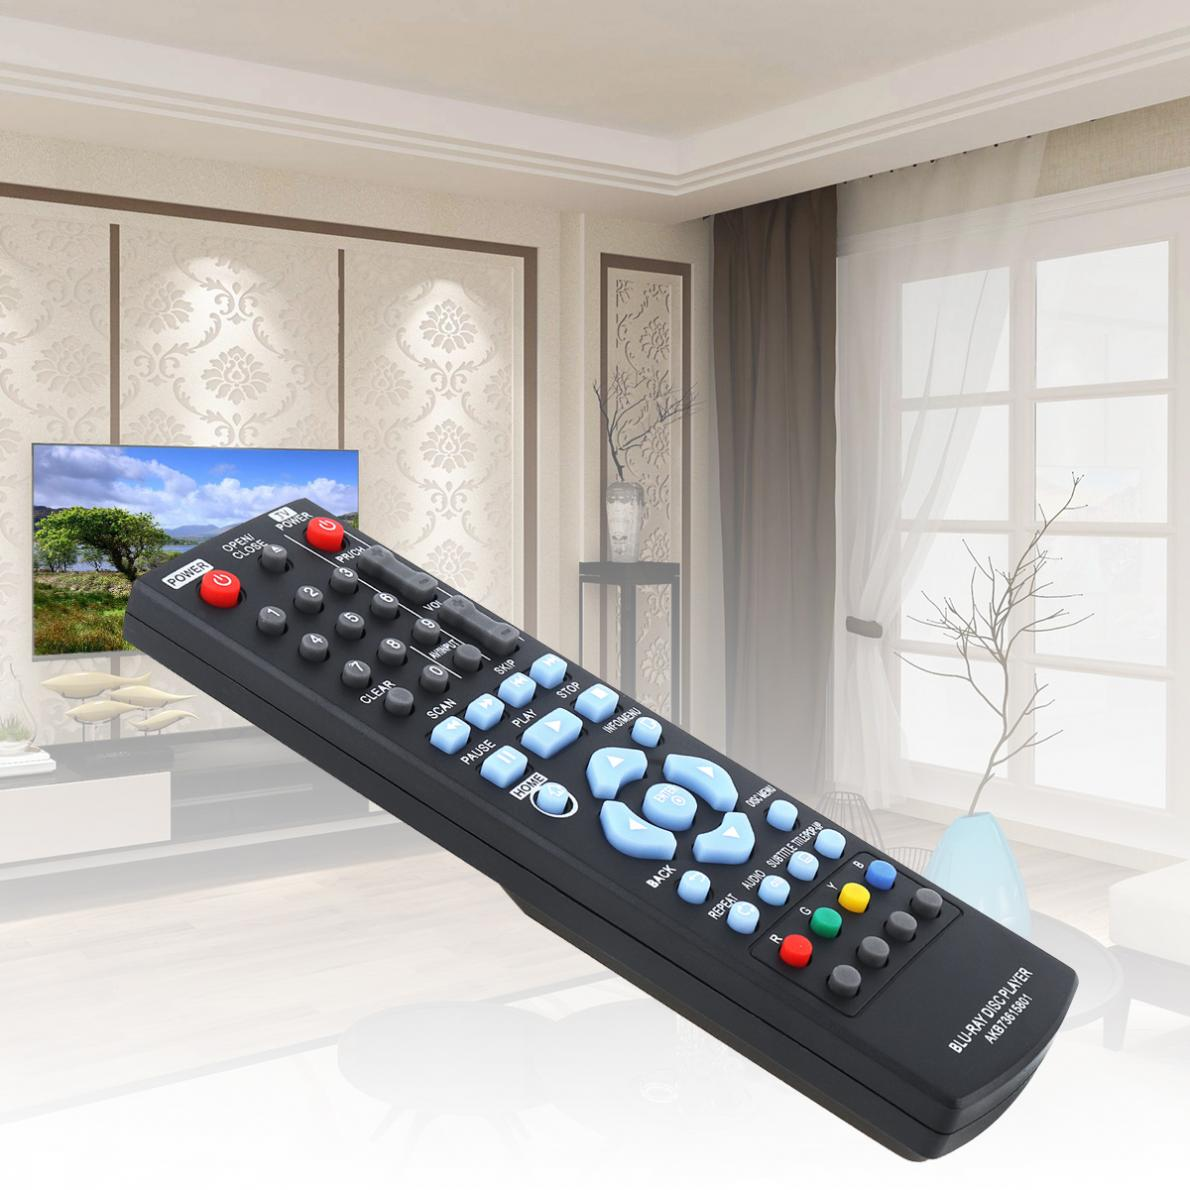 Replacement 433MHz IR TV Remote Control with Long Transmission for LG AKB73615801 TV 2019 New in Remote Controls from Consumer Electronics